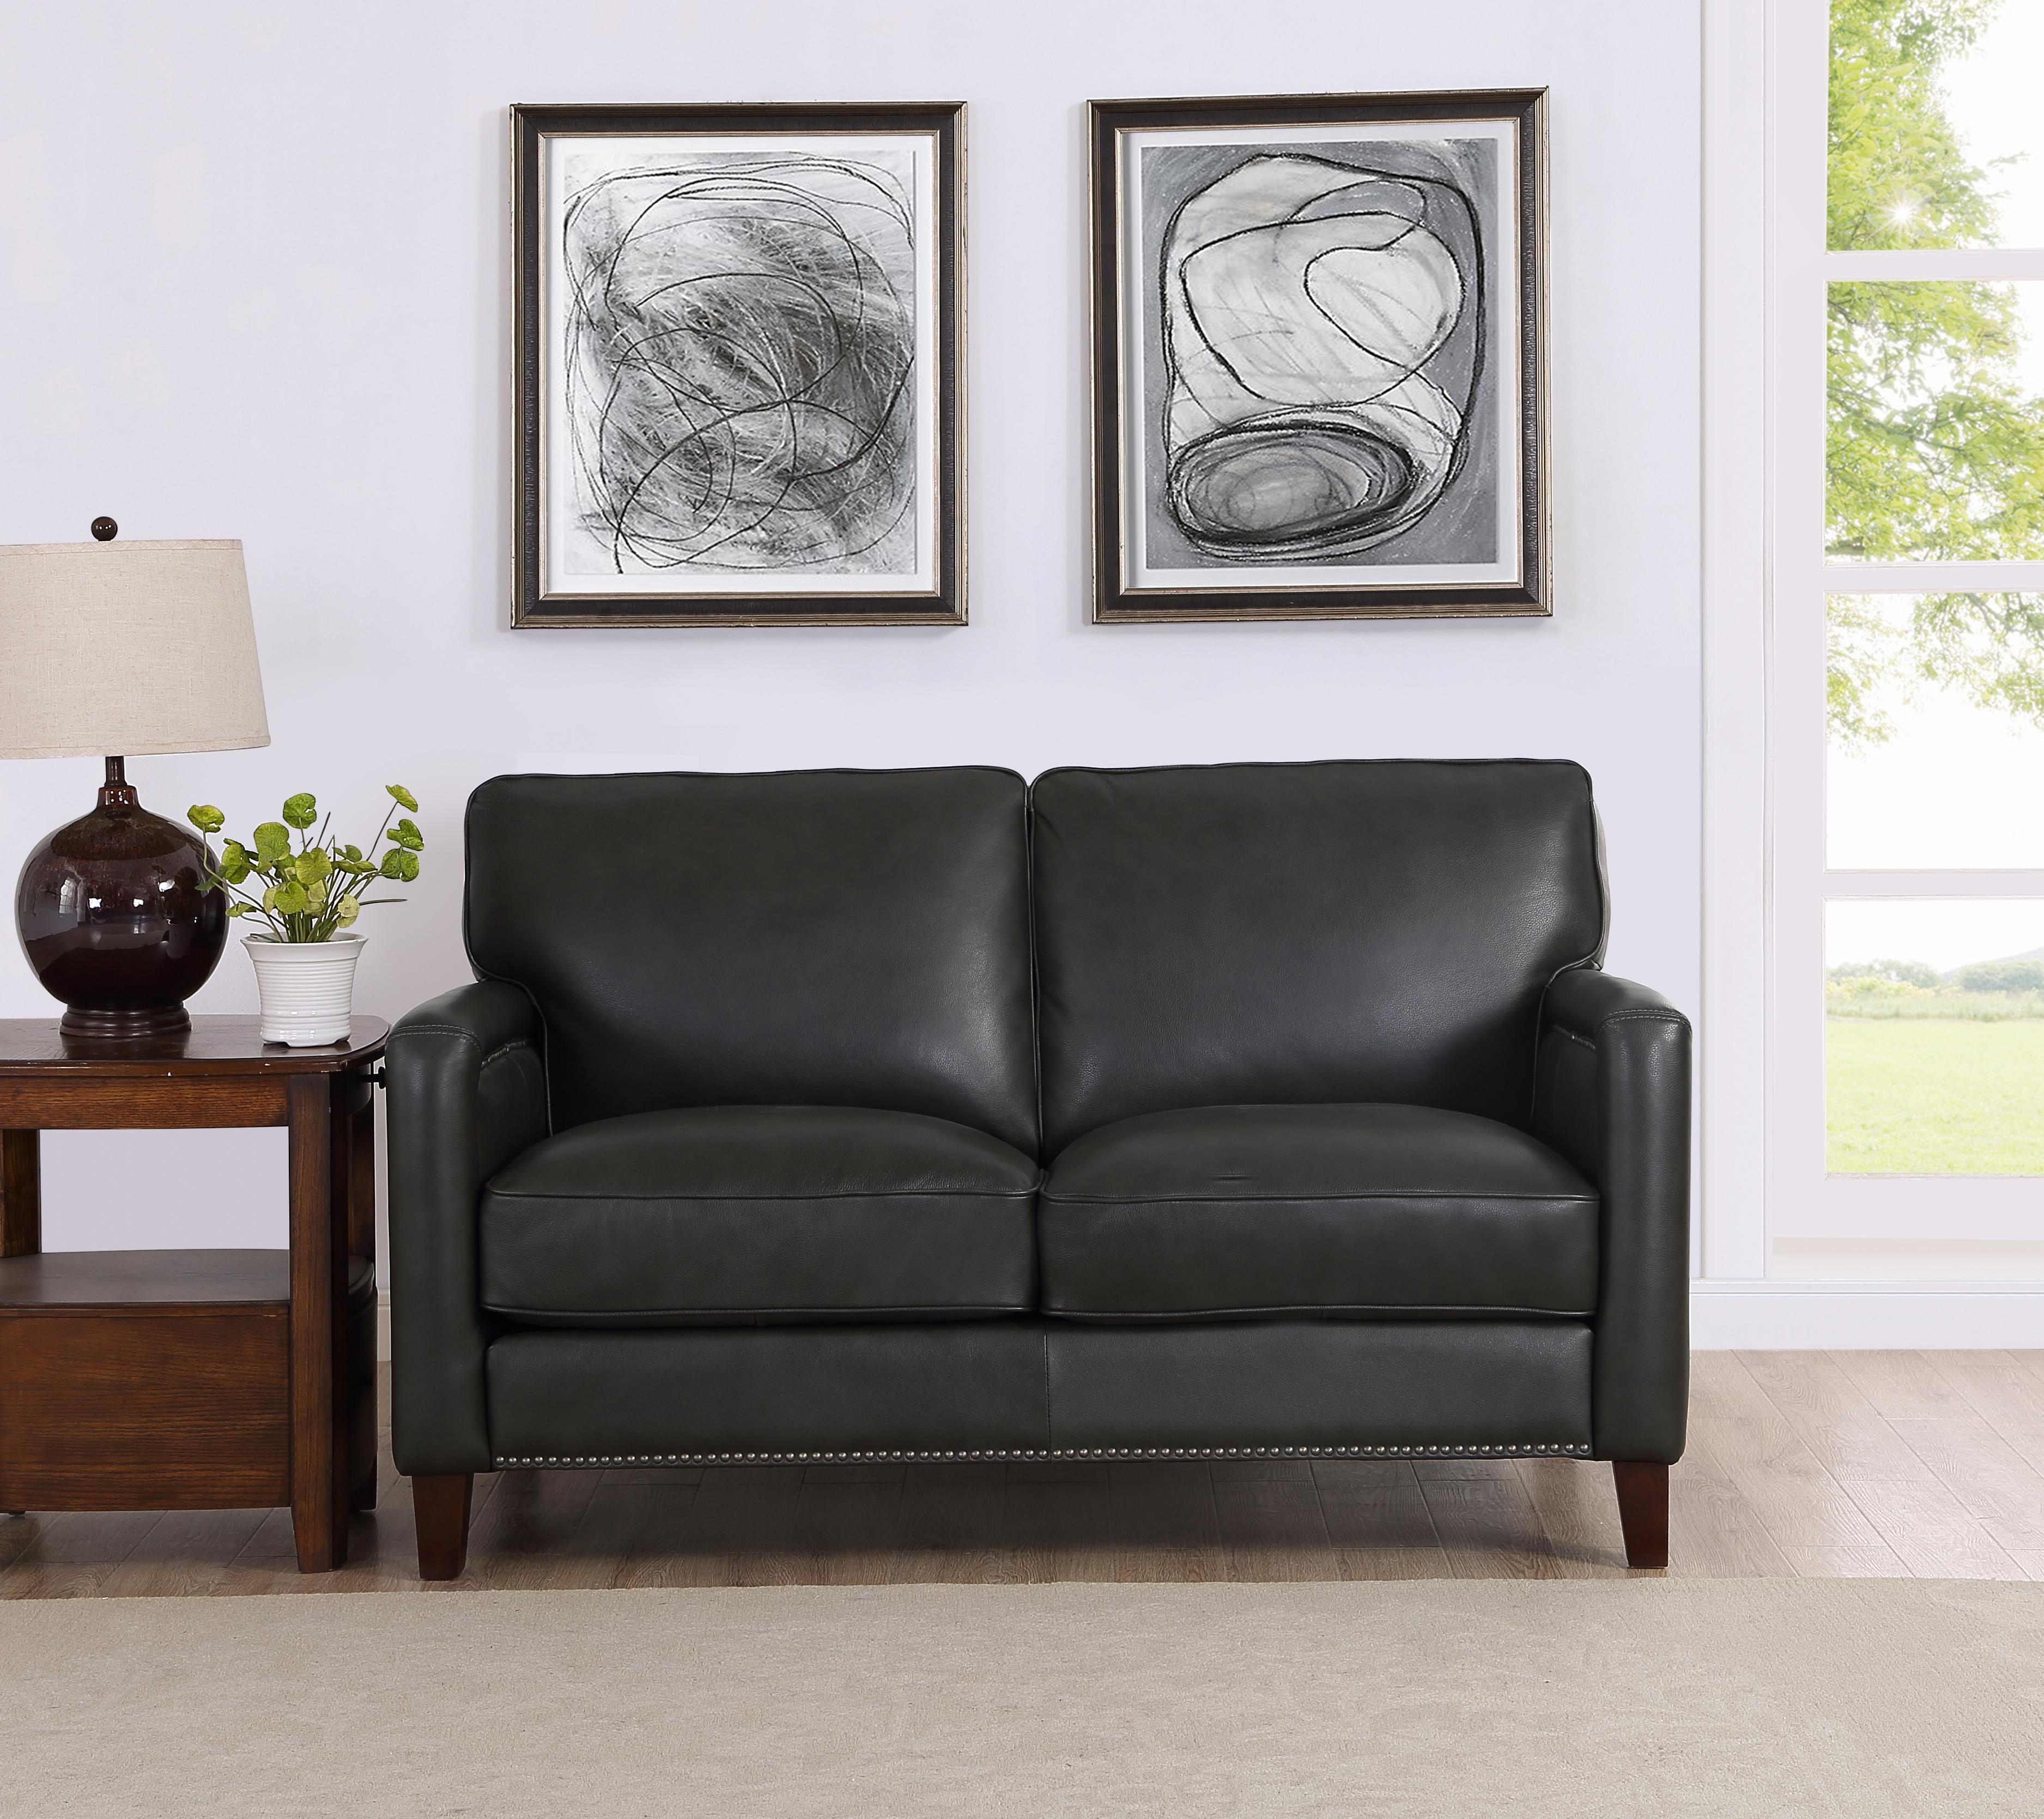 Cool Hydeline Wilmington Quartz Loveseat The Classy Home Home Interior And Landscaping Palasignezvosmurscom